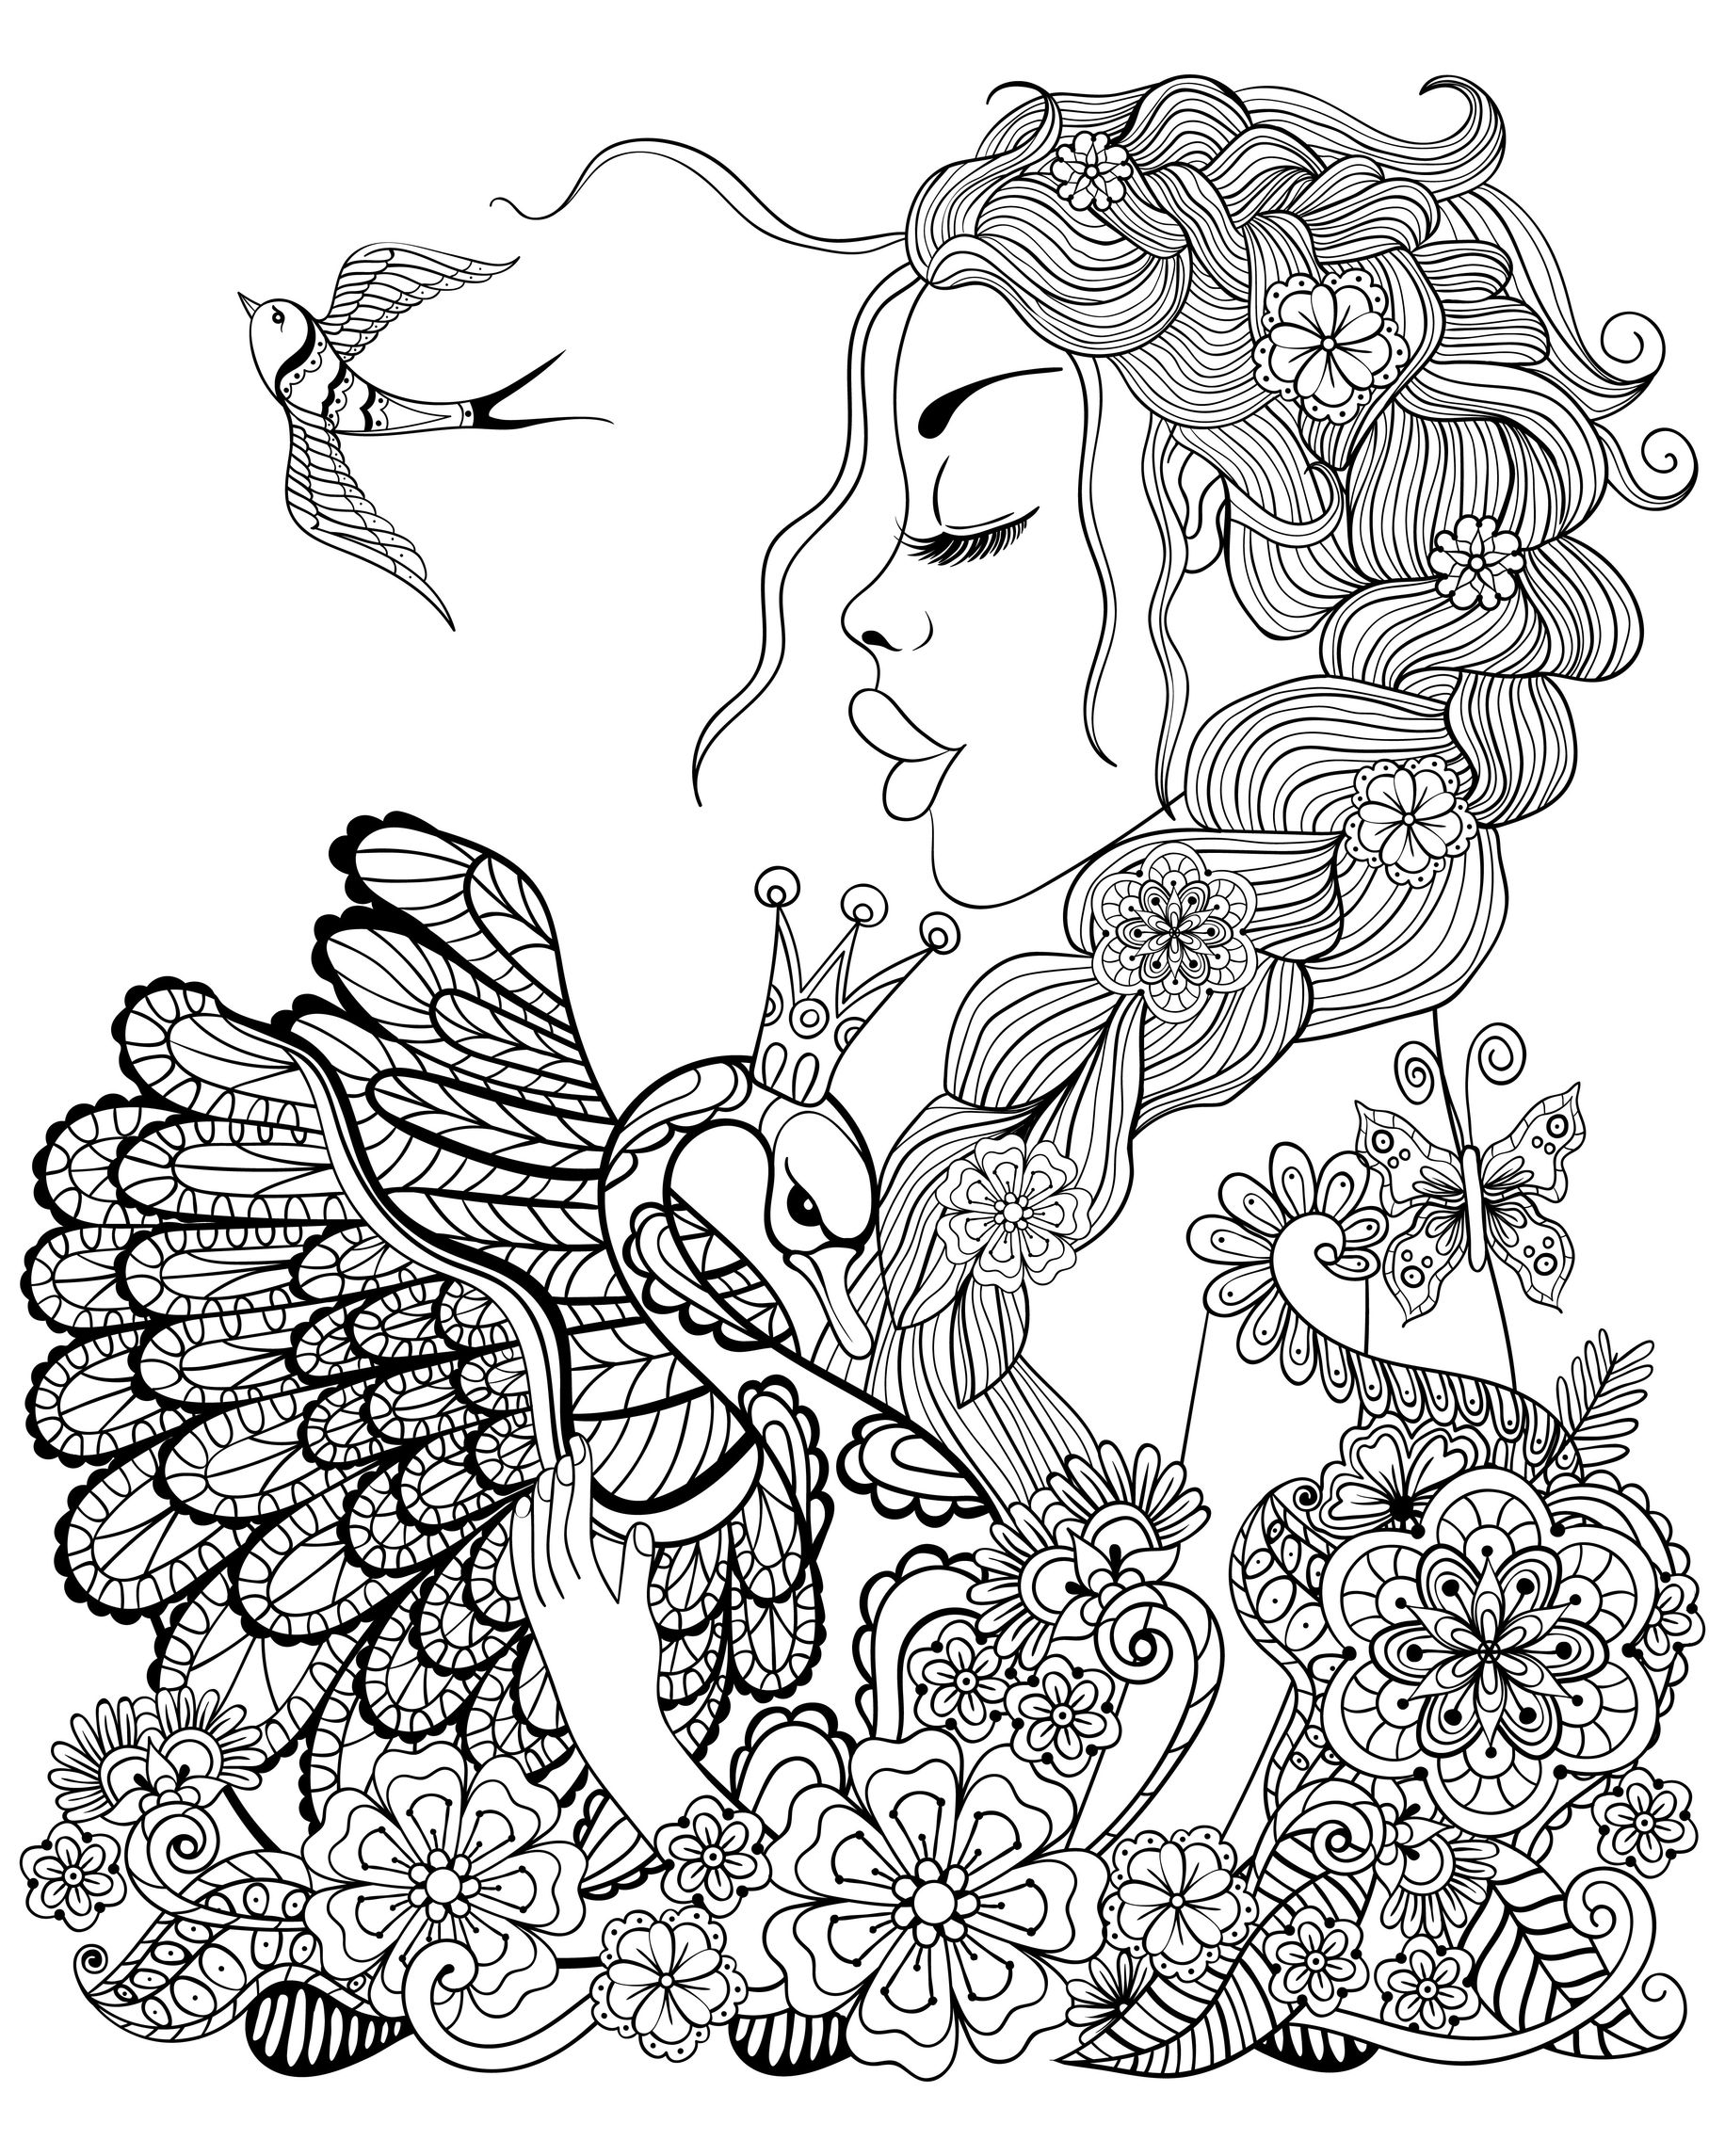 Coloring woman swan and bird